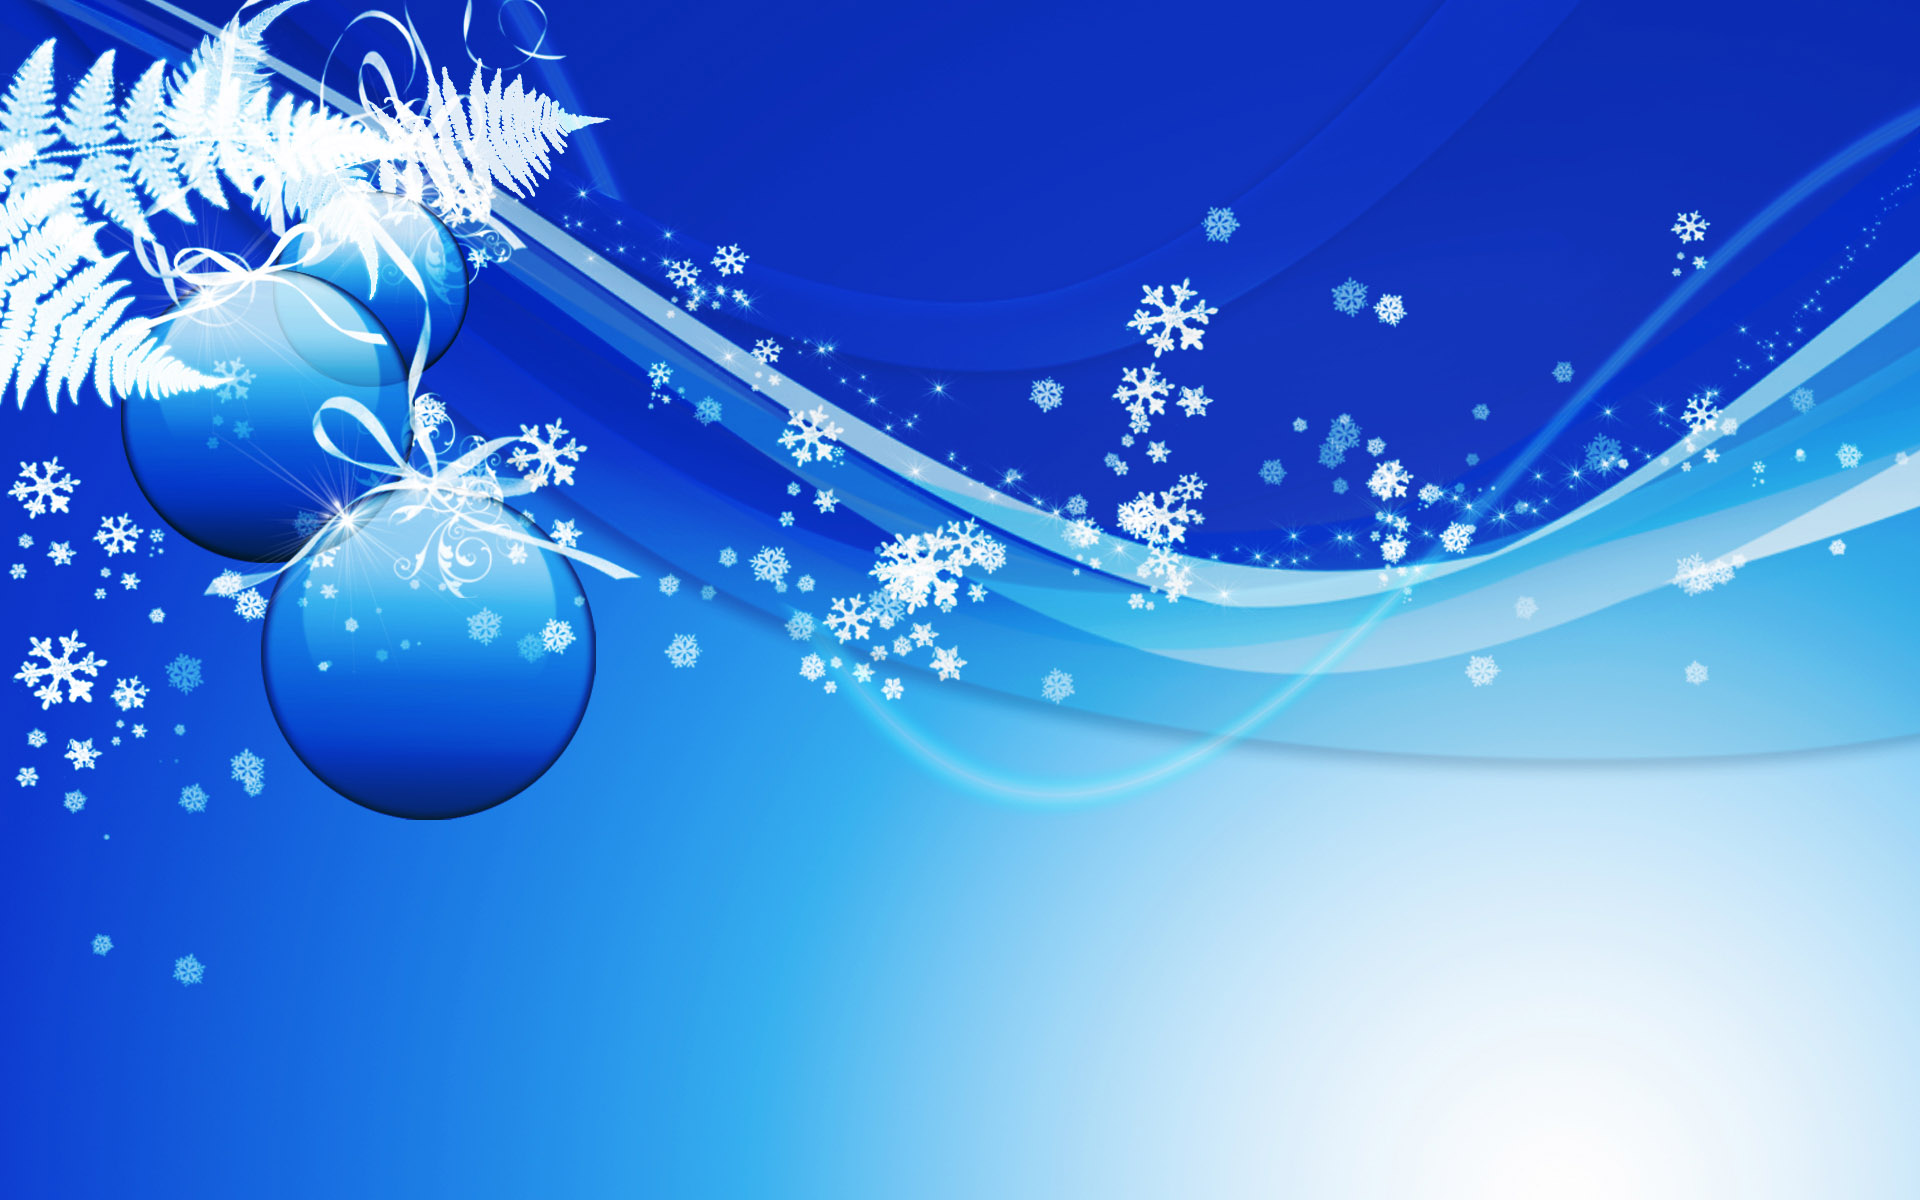 Christmas wallpaper high definition 27103